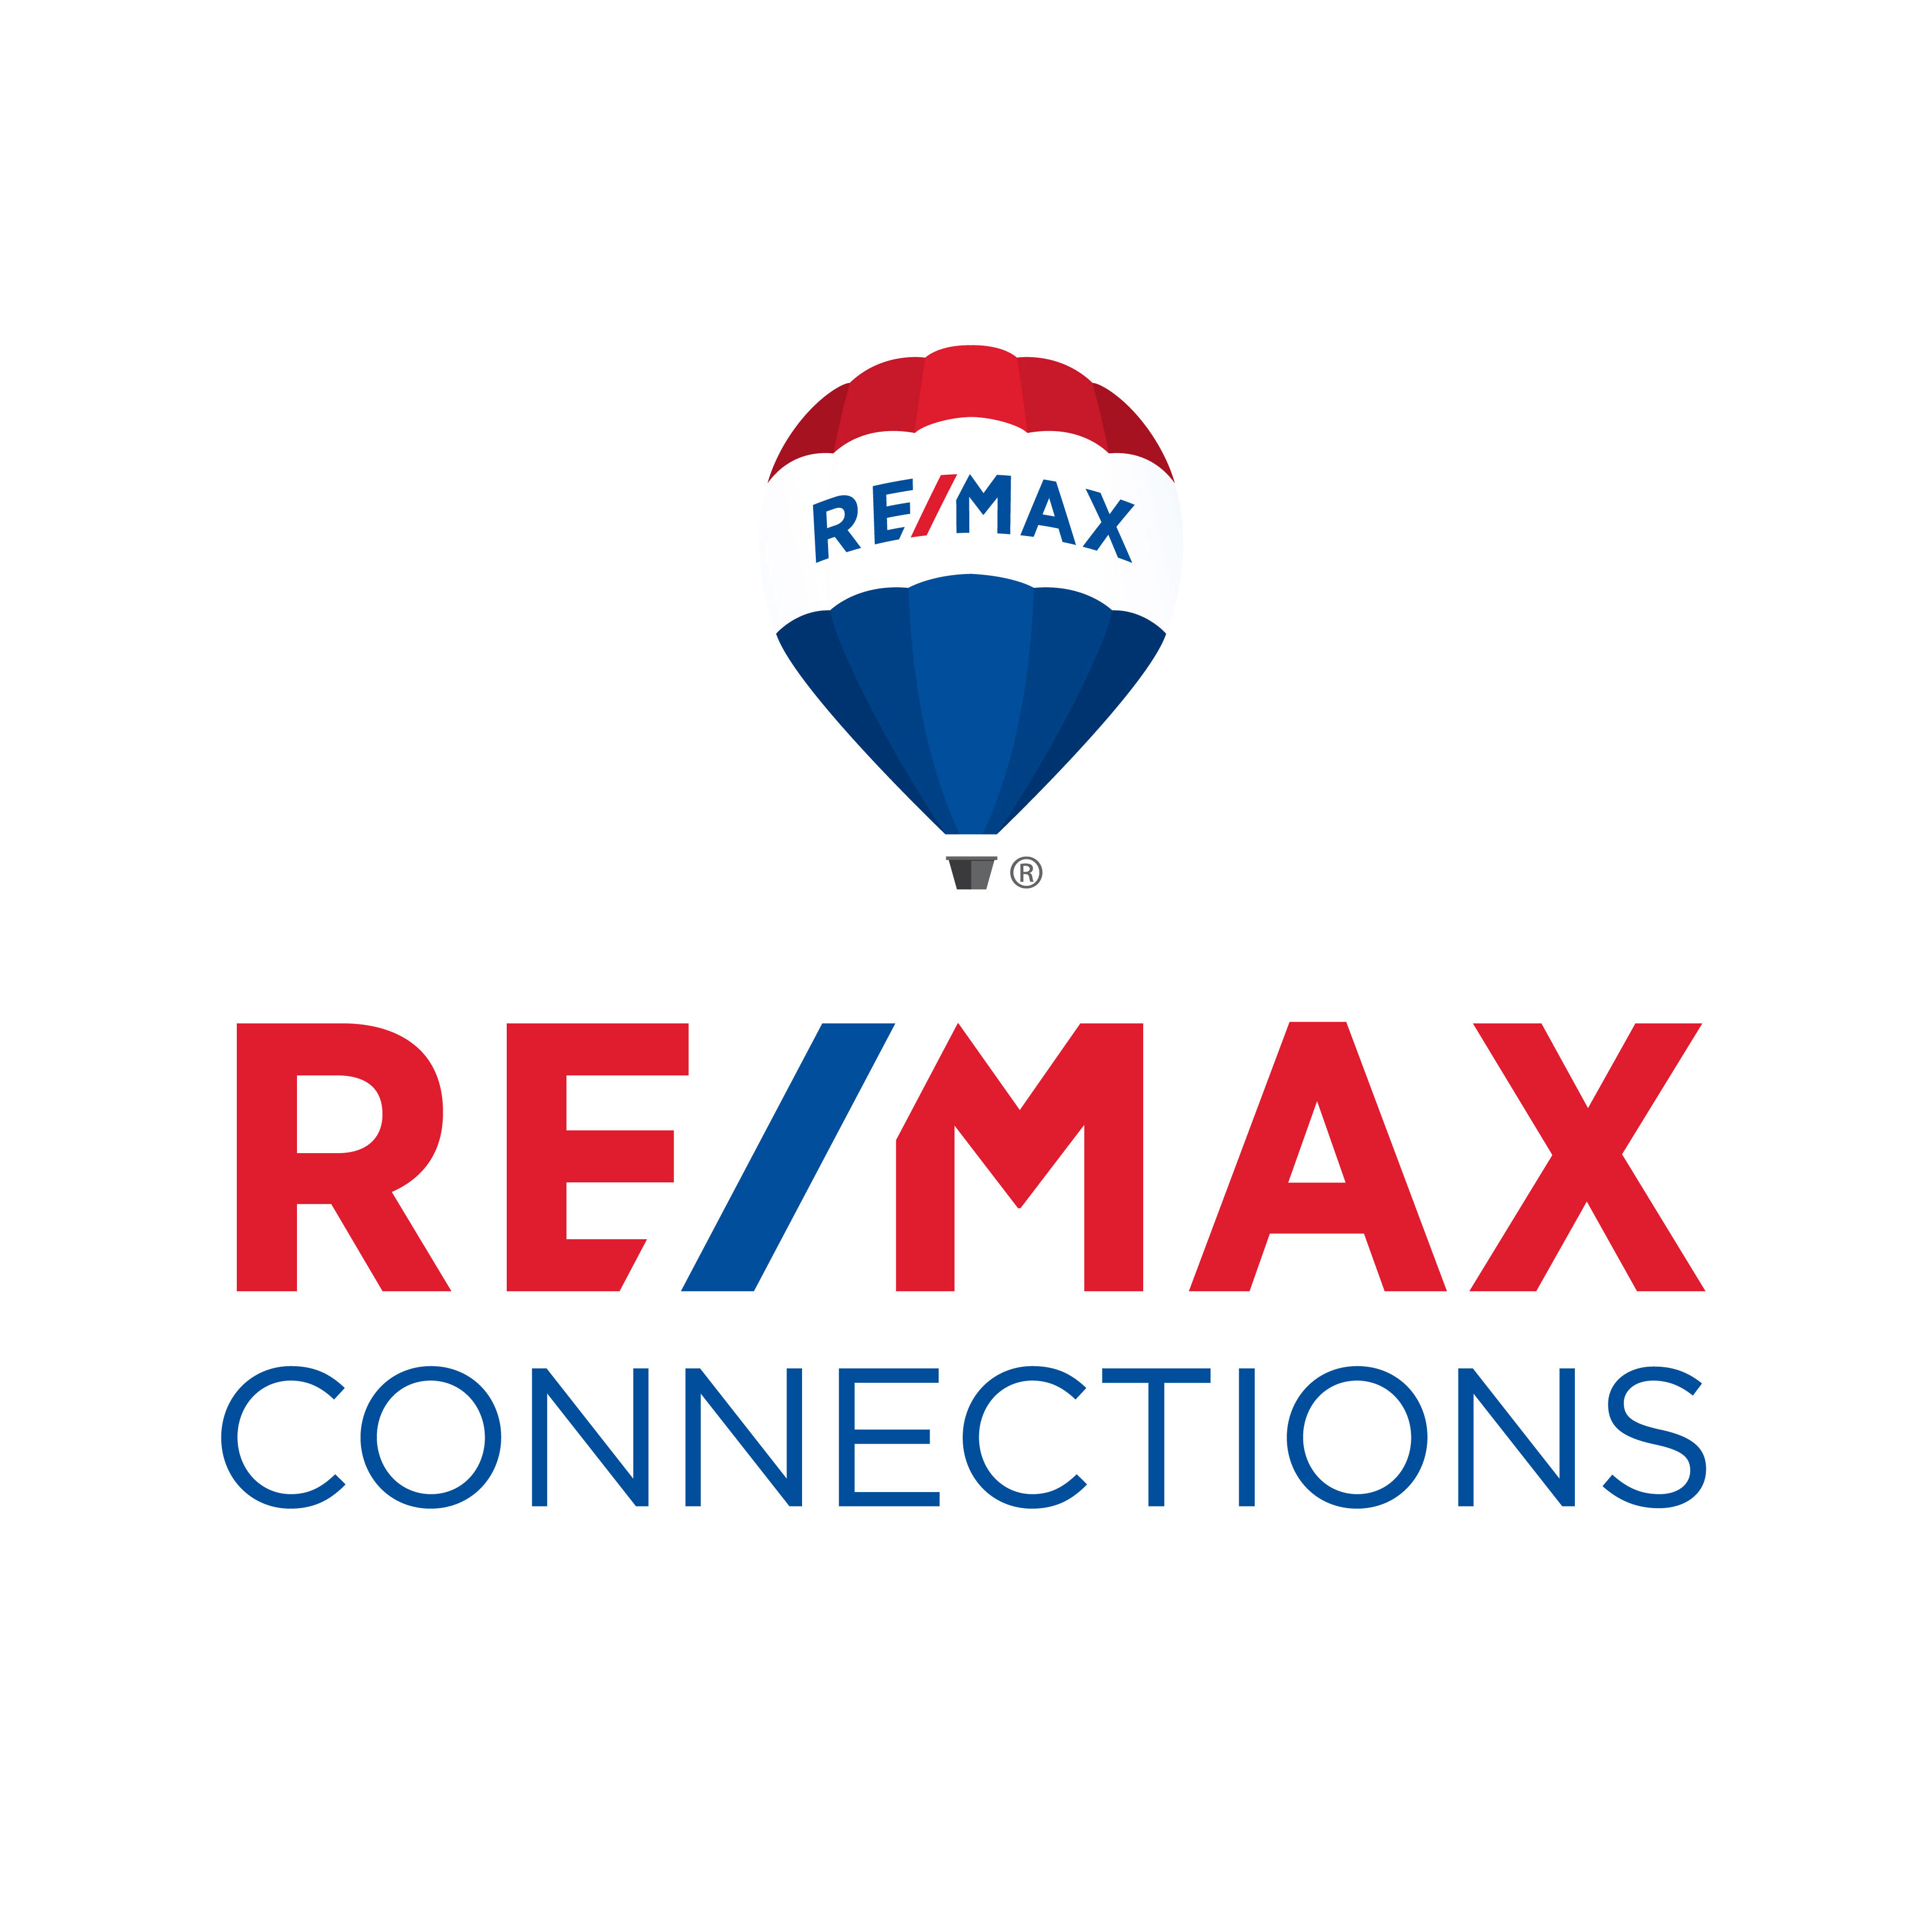 RE/MAX Connections